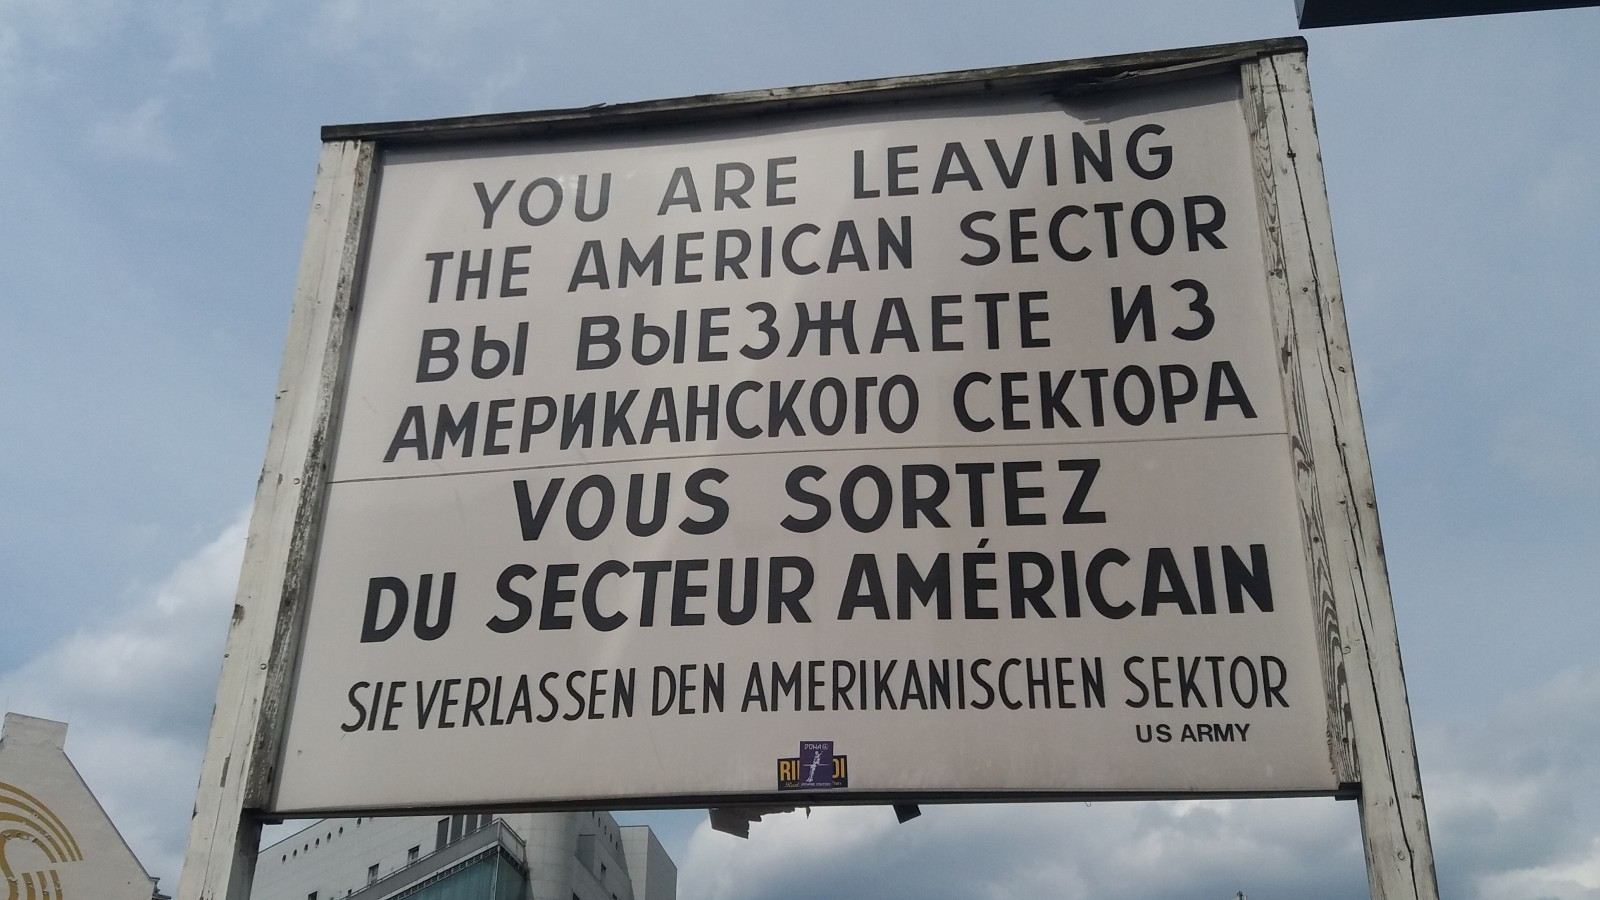 Cold War tour of Berlin Checkpoint Charlie